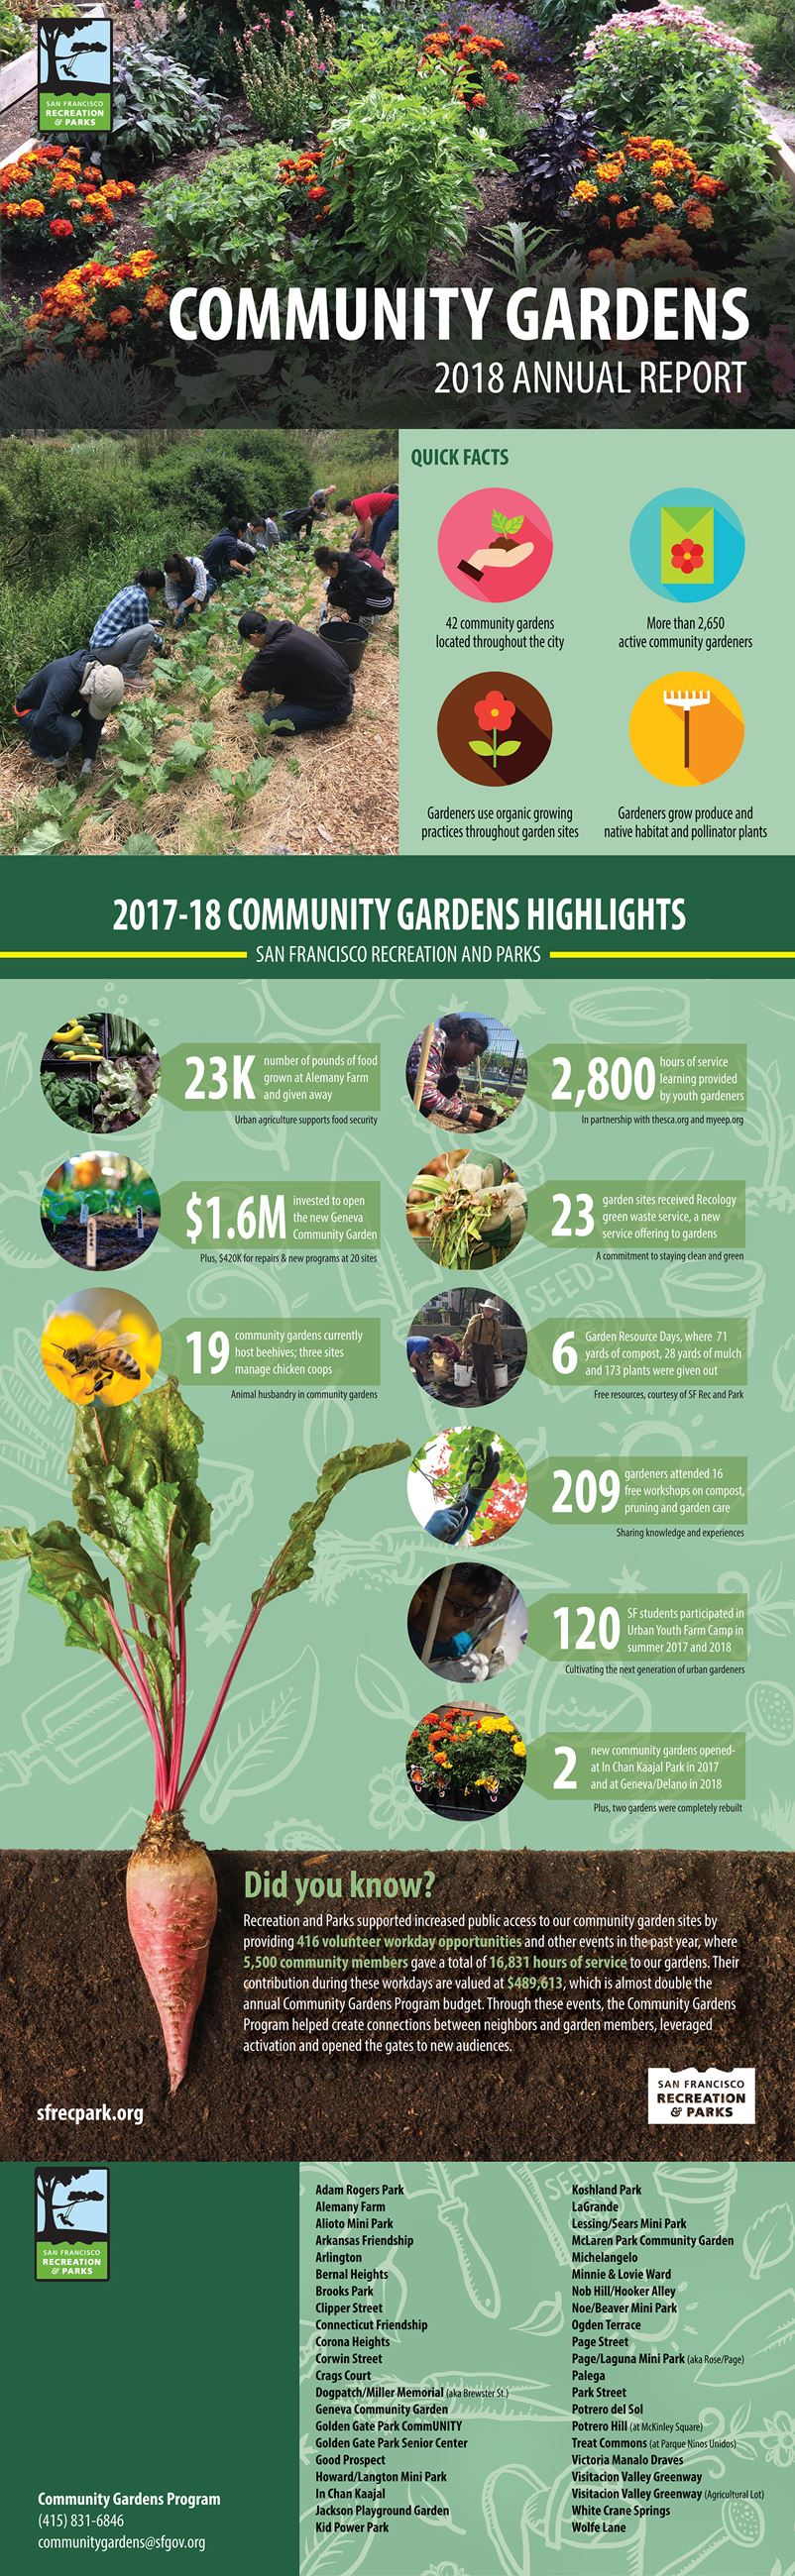 community gardens annual report 2018 Opens in new window